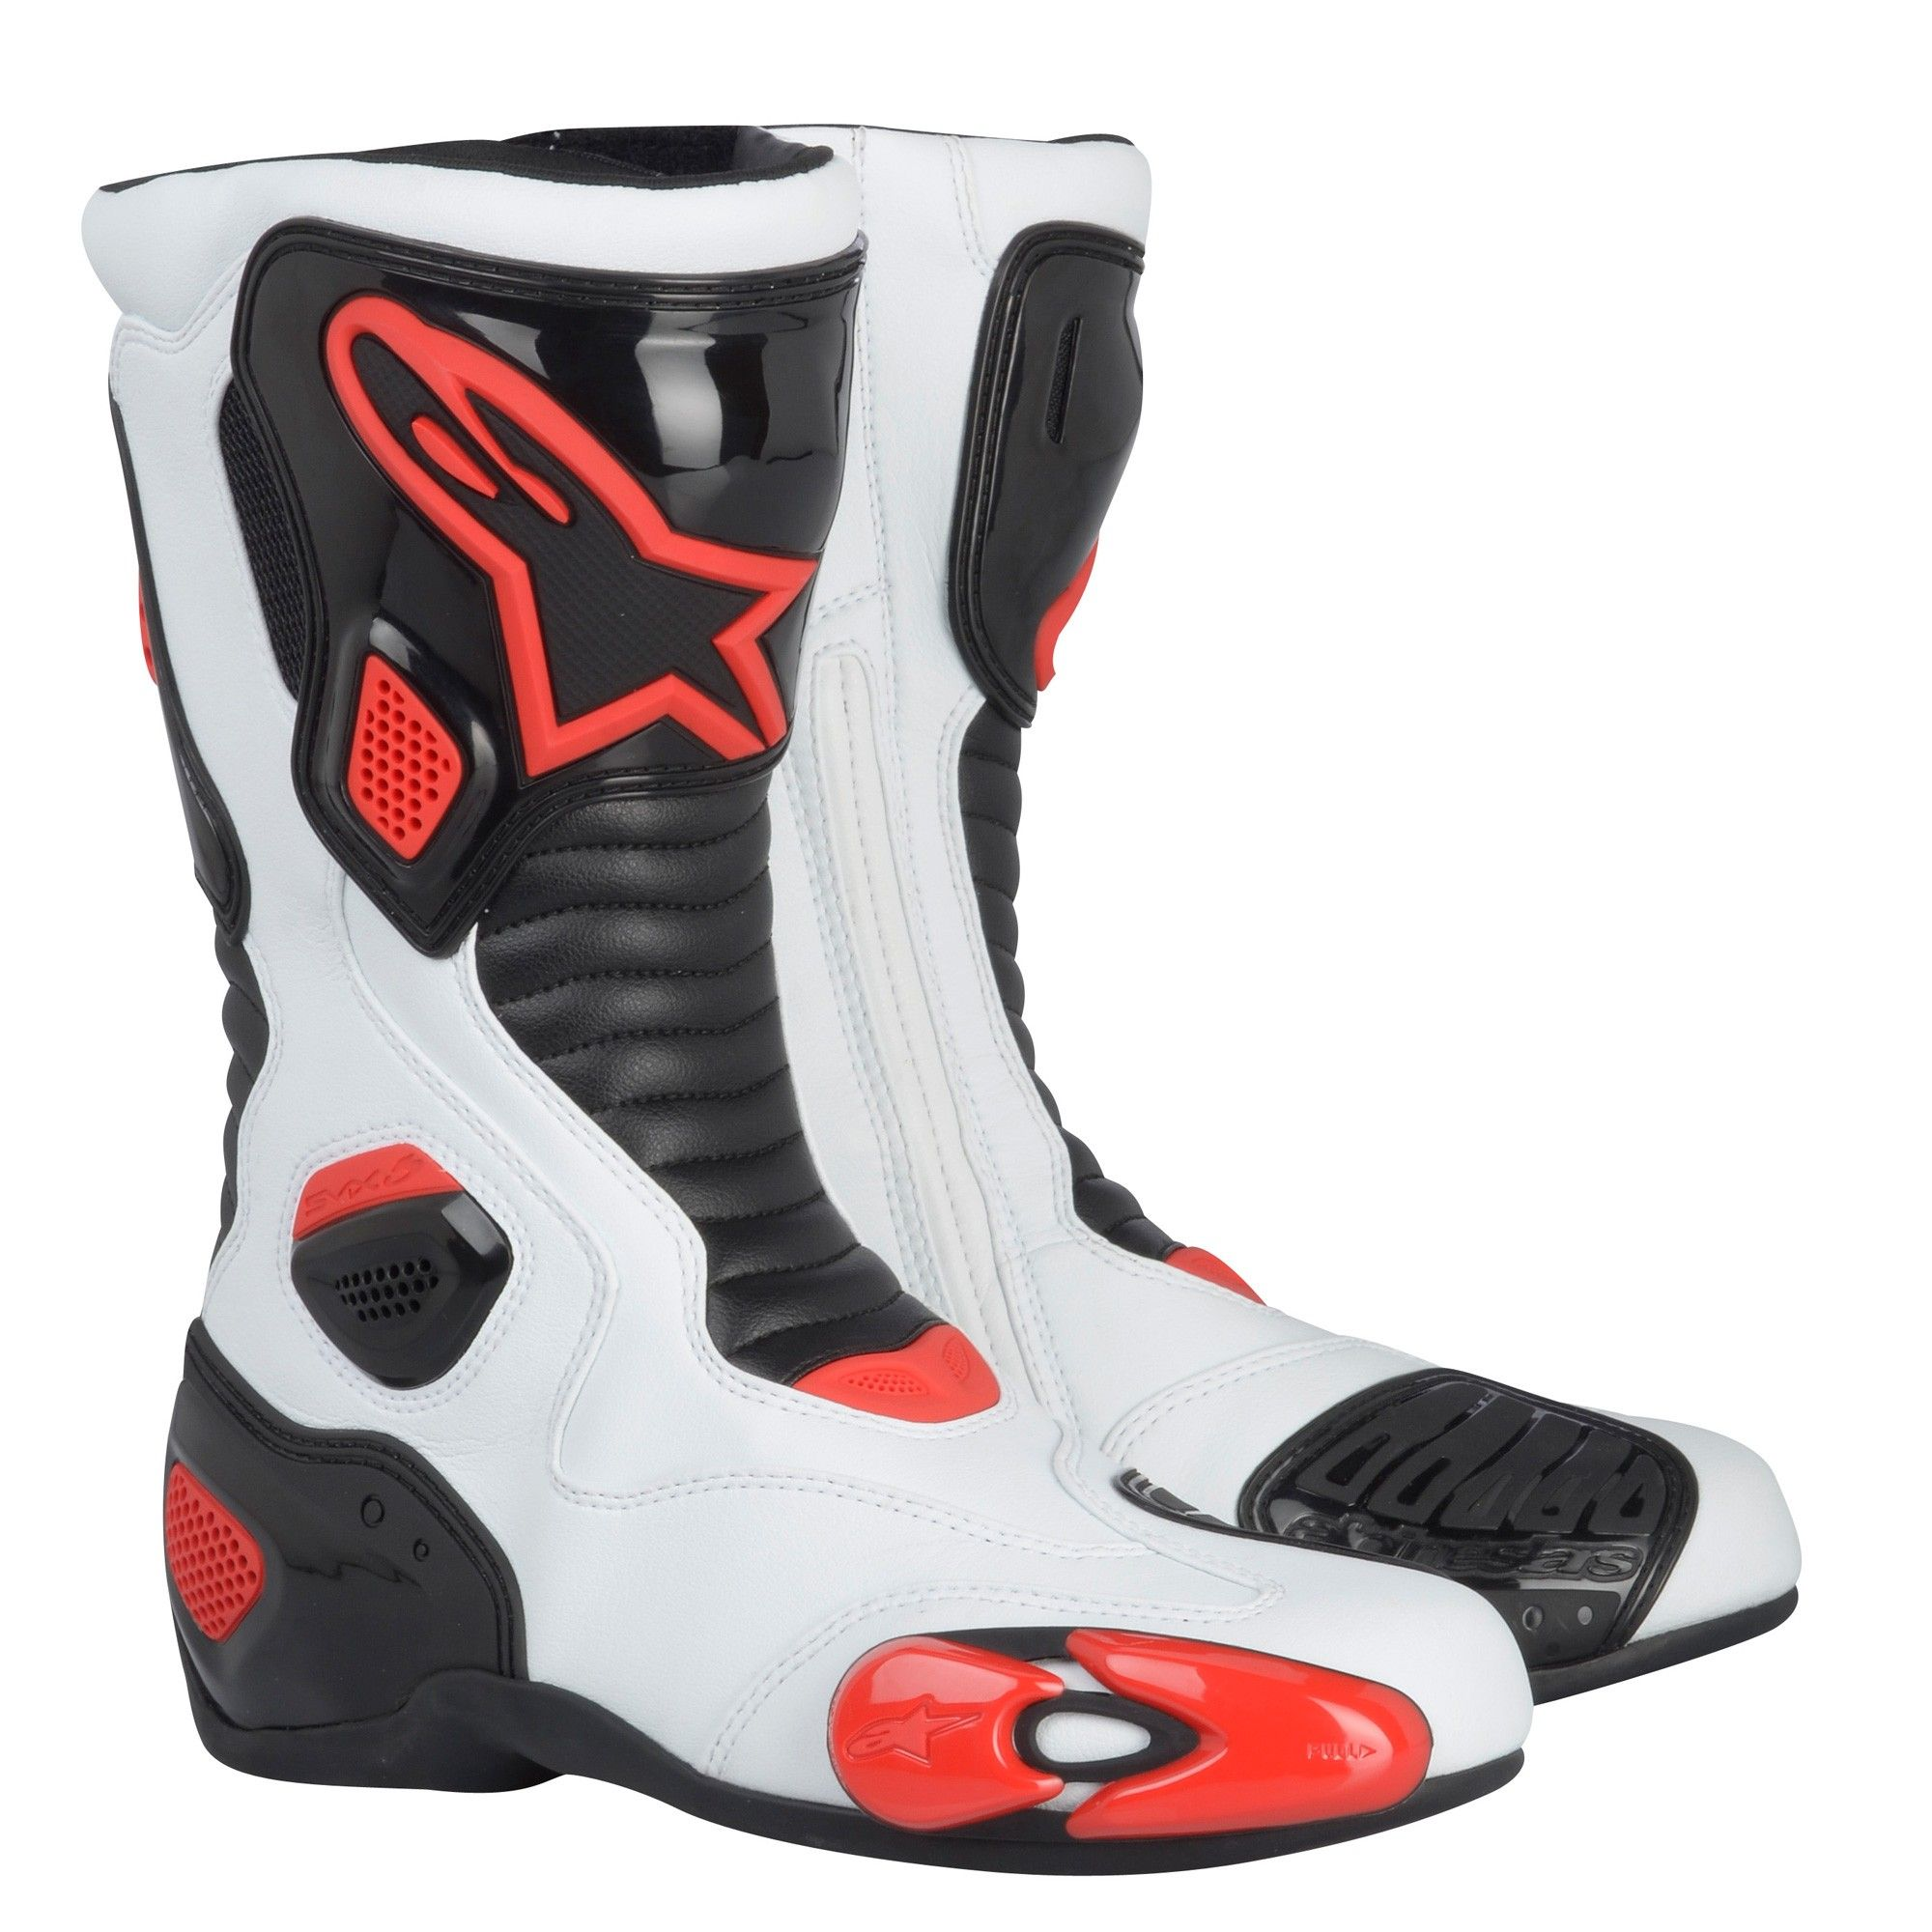 Alpinestars Racing Replica 1 Piece Leather Suit Boots Mens Motorcycle Boots Women S Motorcycle Boots